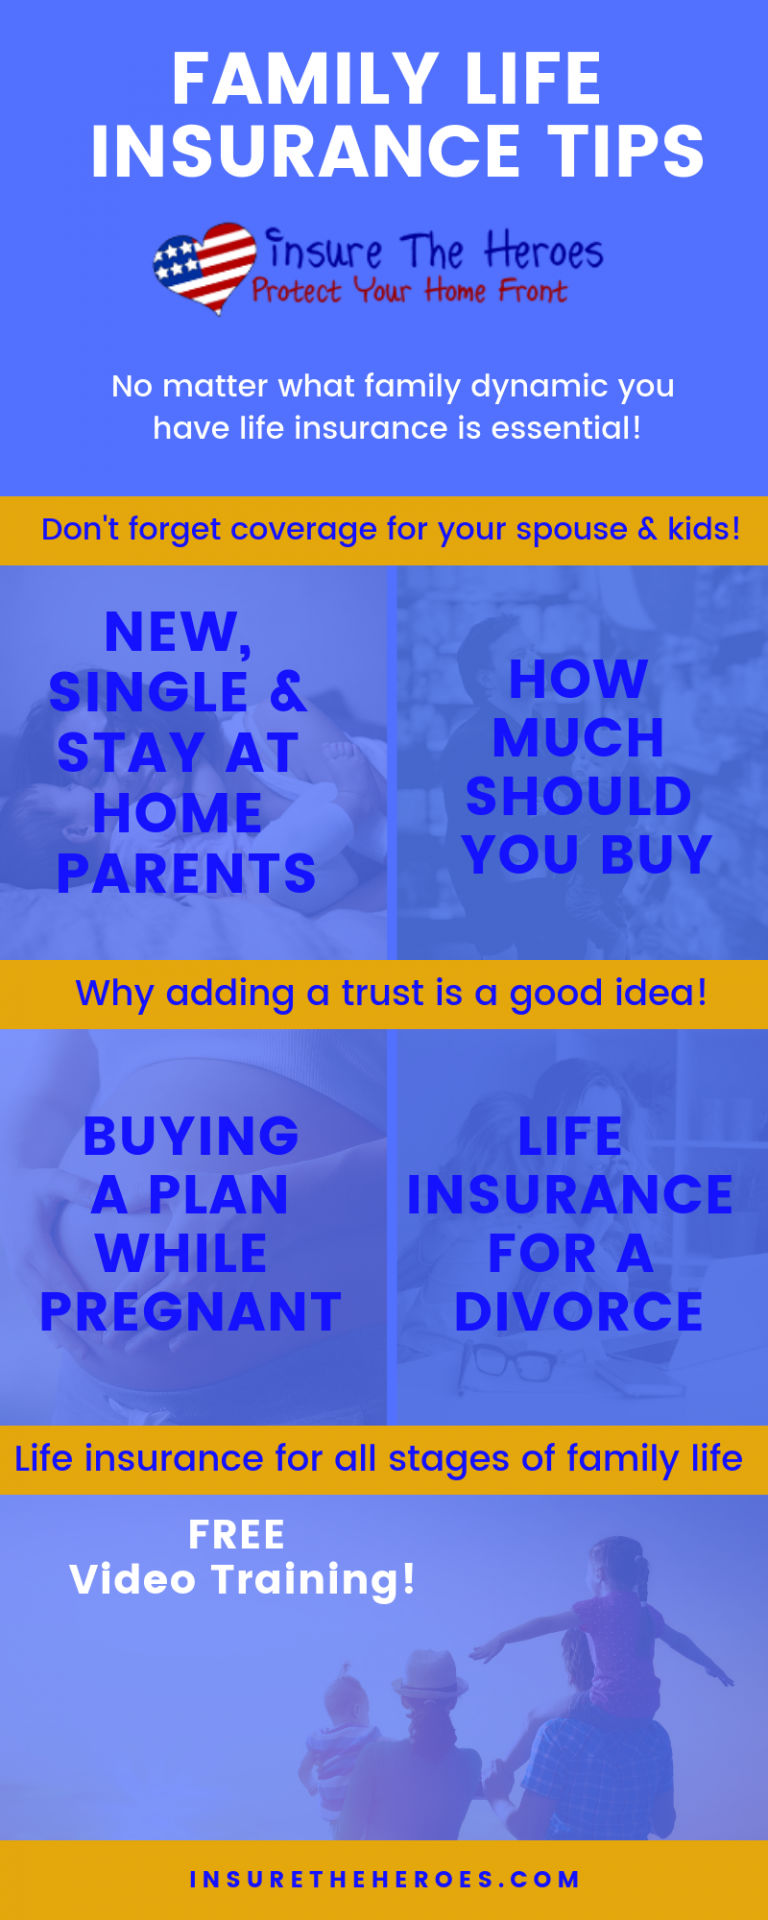 Family Life Insurance Tips For All Stages Each Family Is Unique